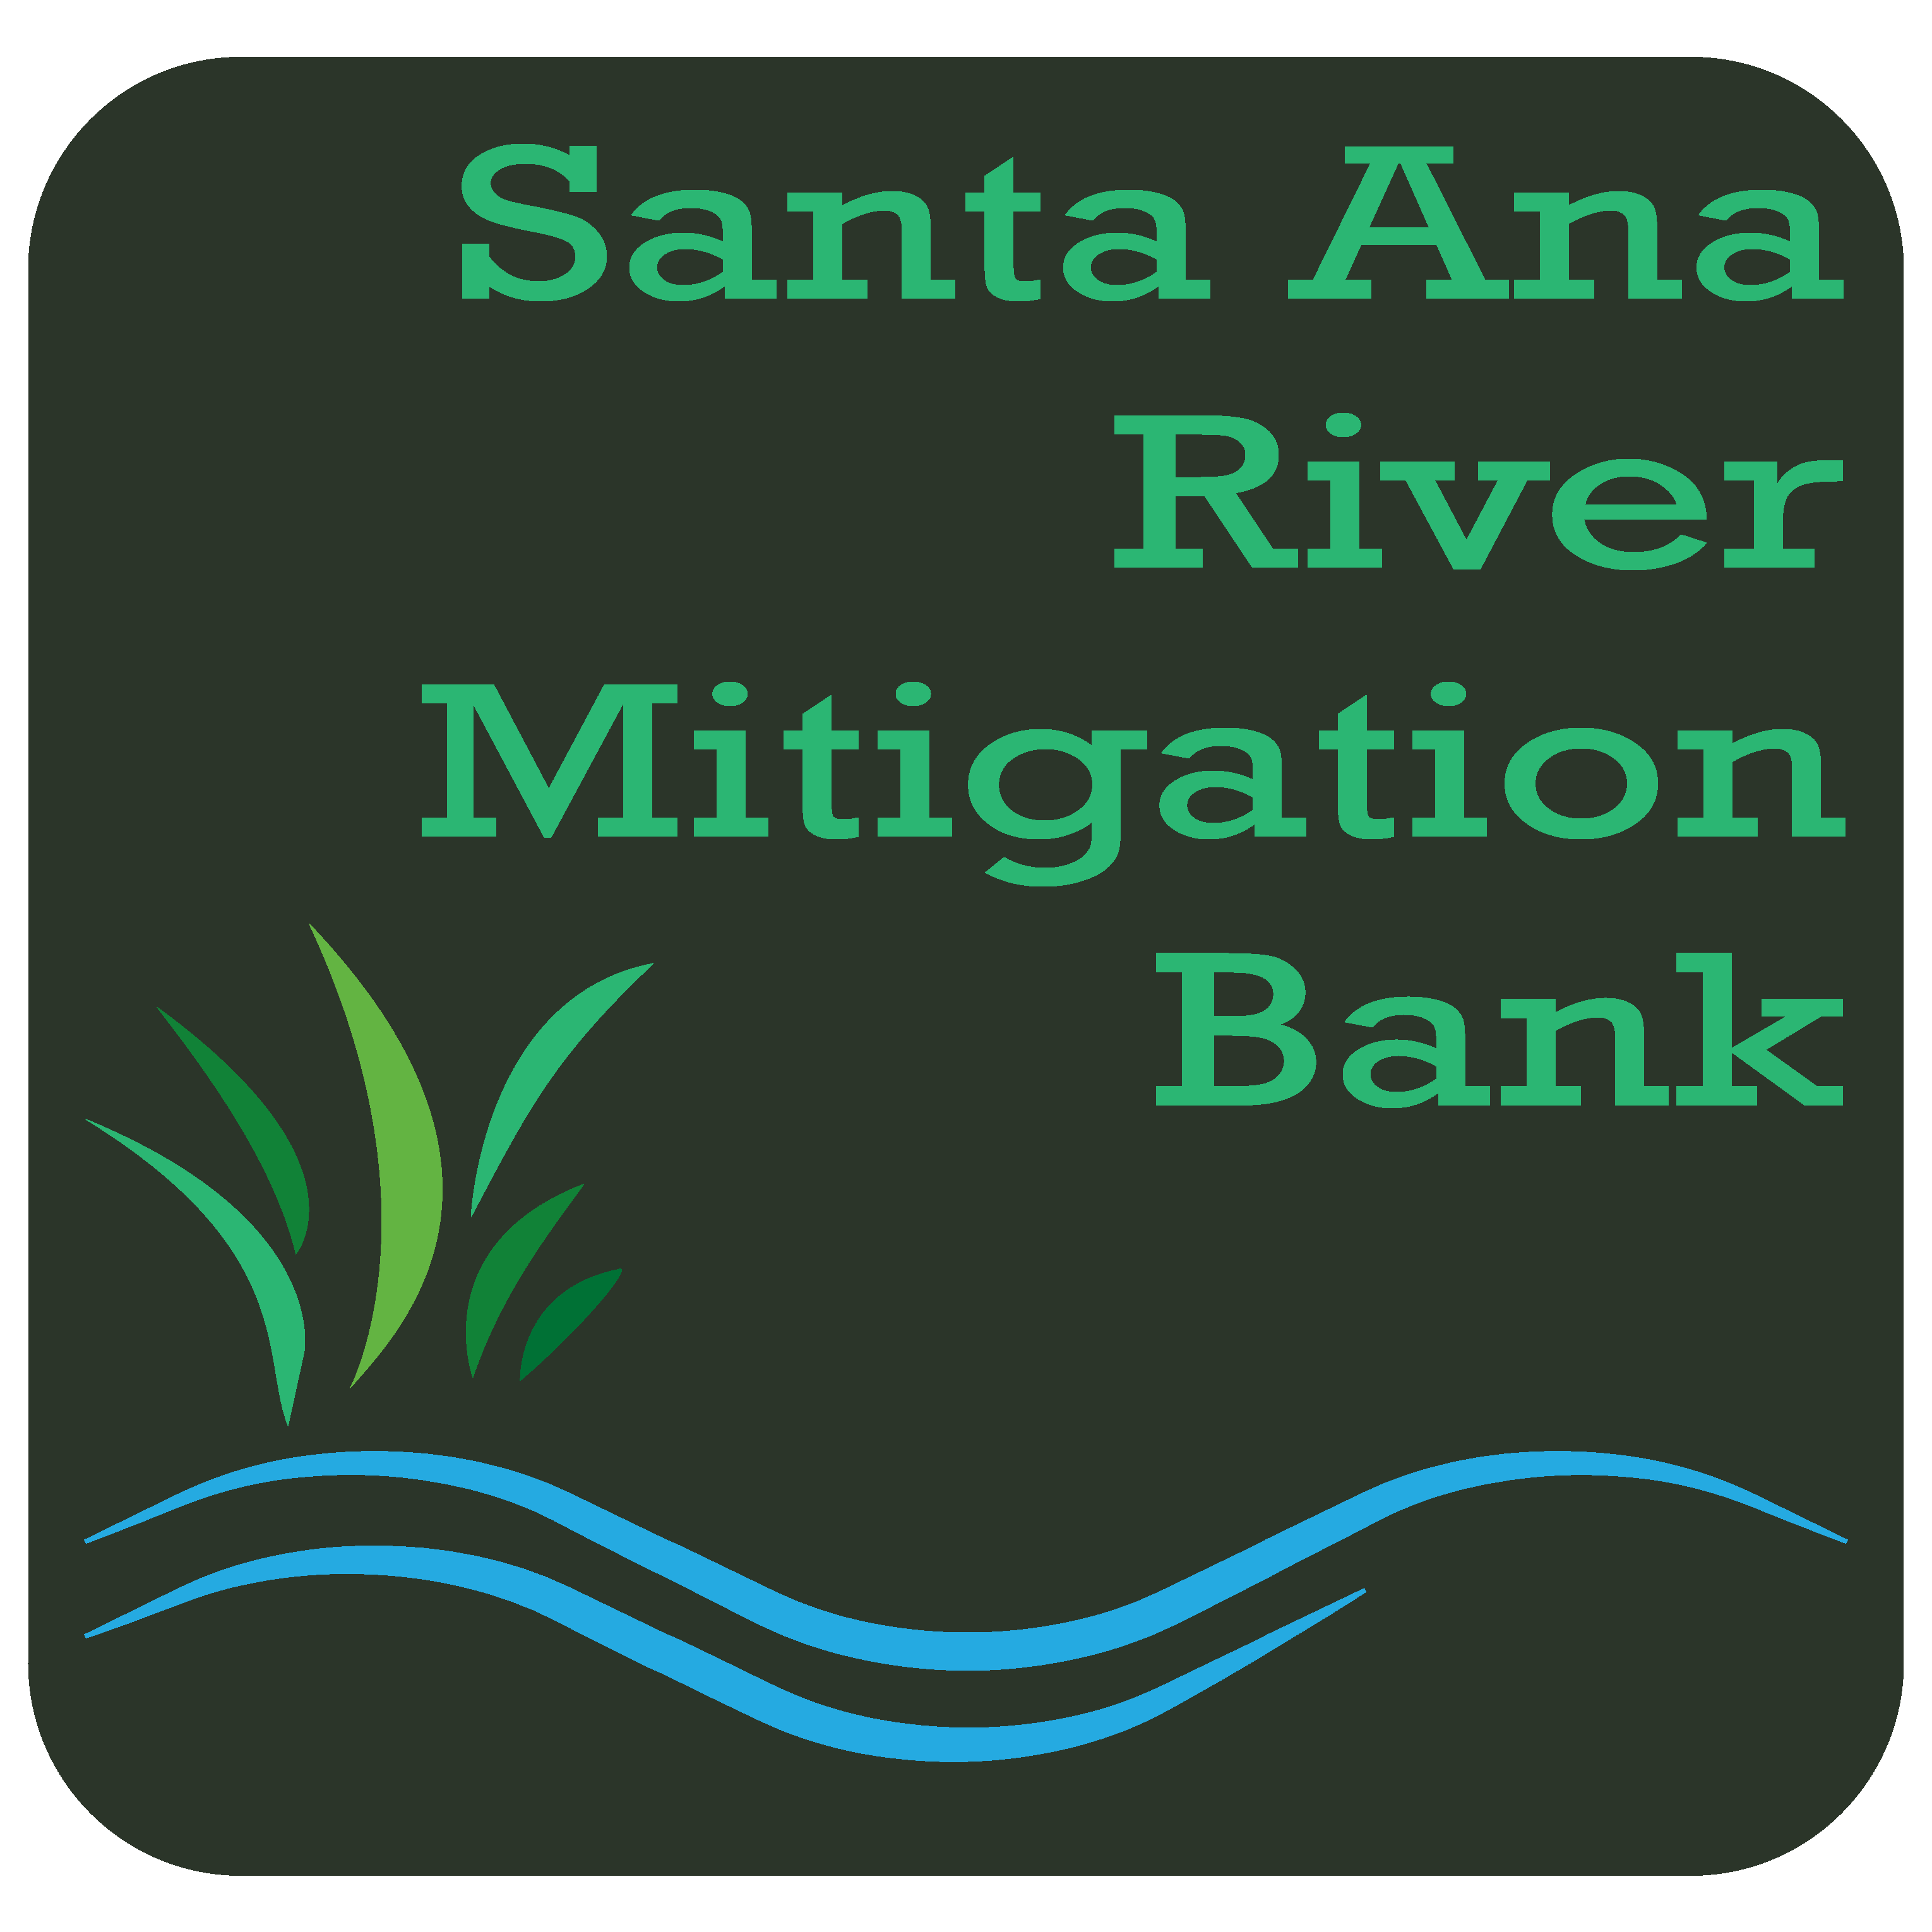 SAR-Mitigation-Bank-Logo_new-website